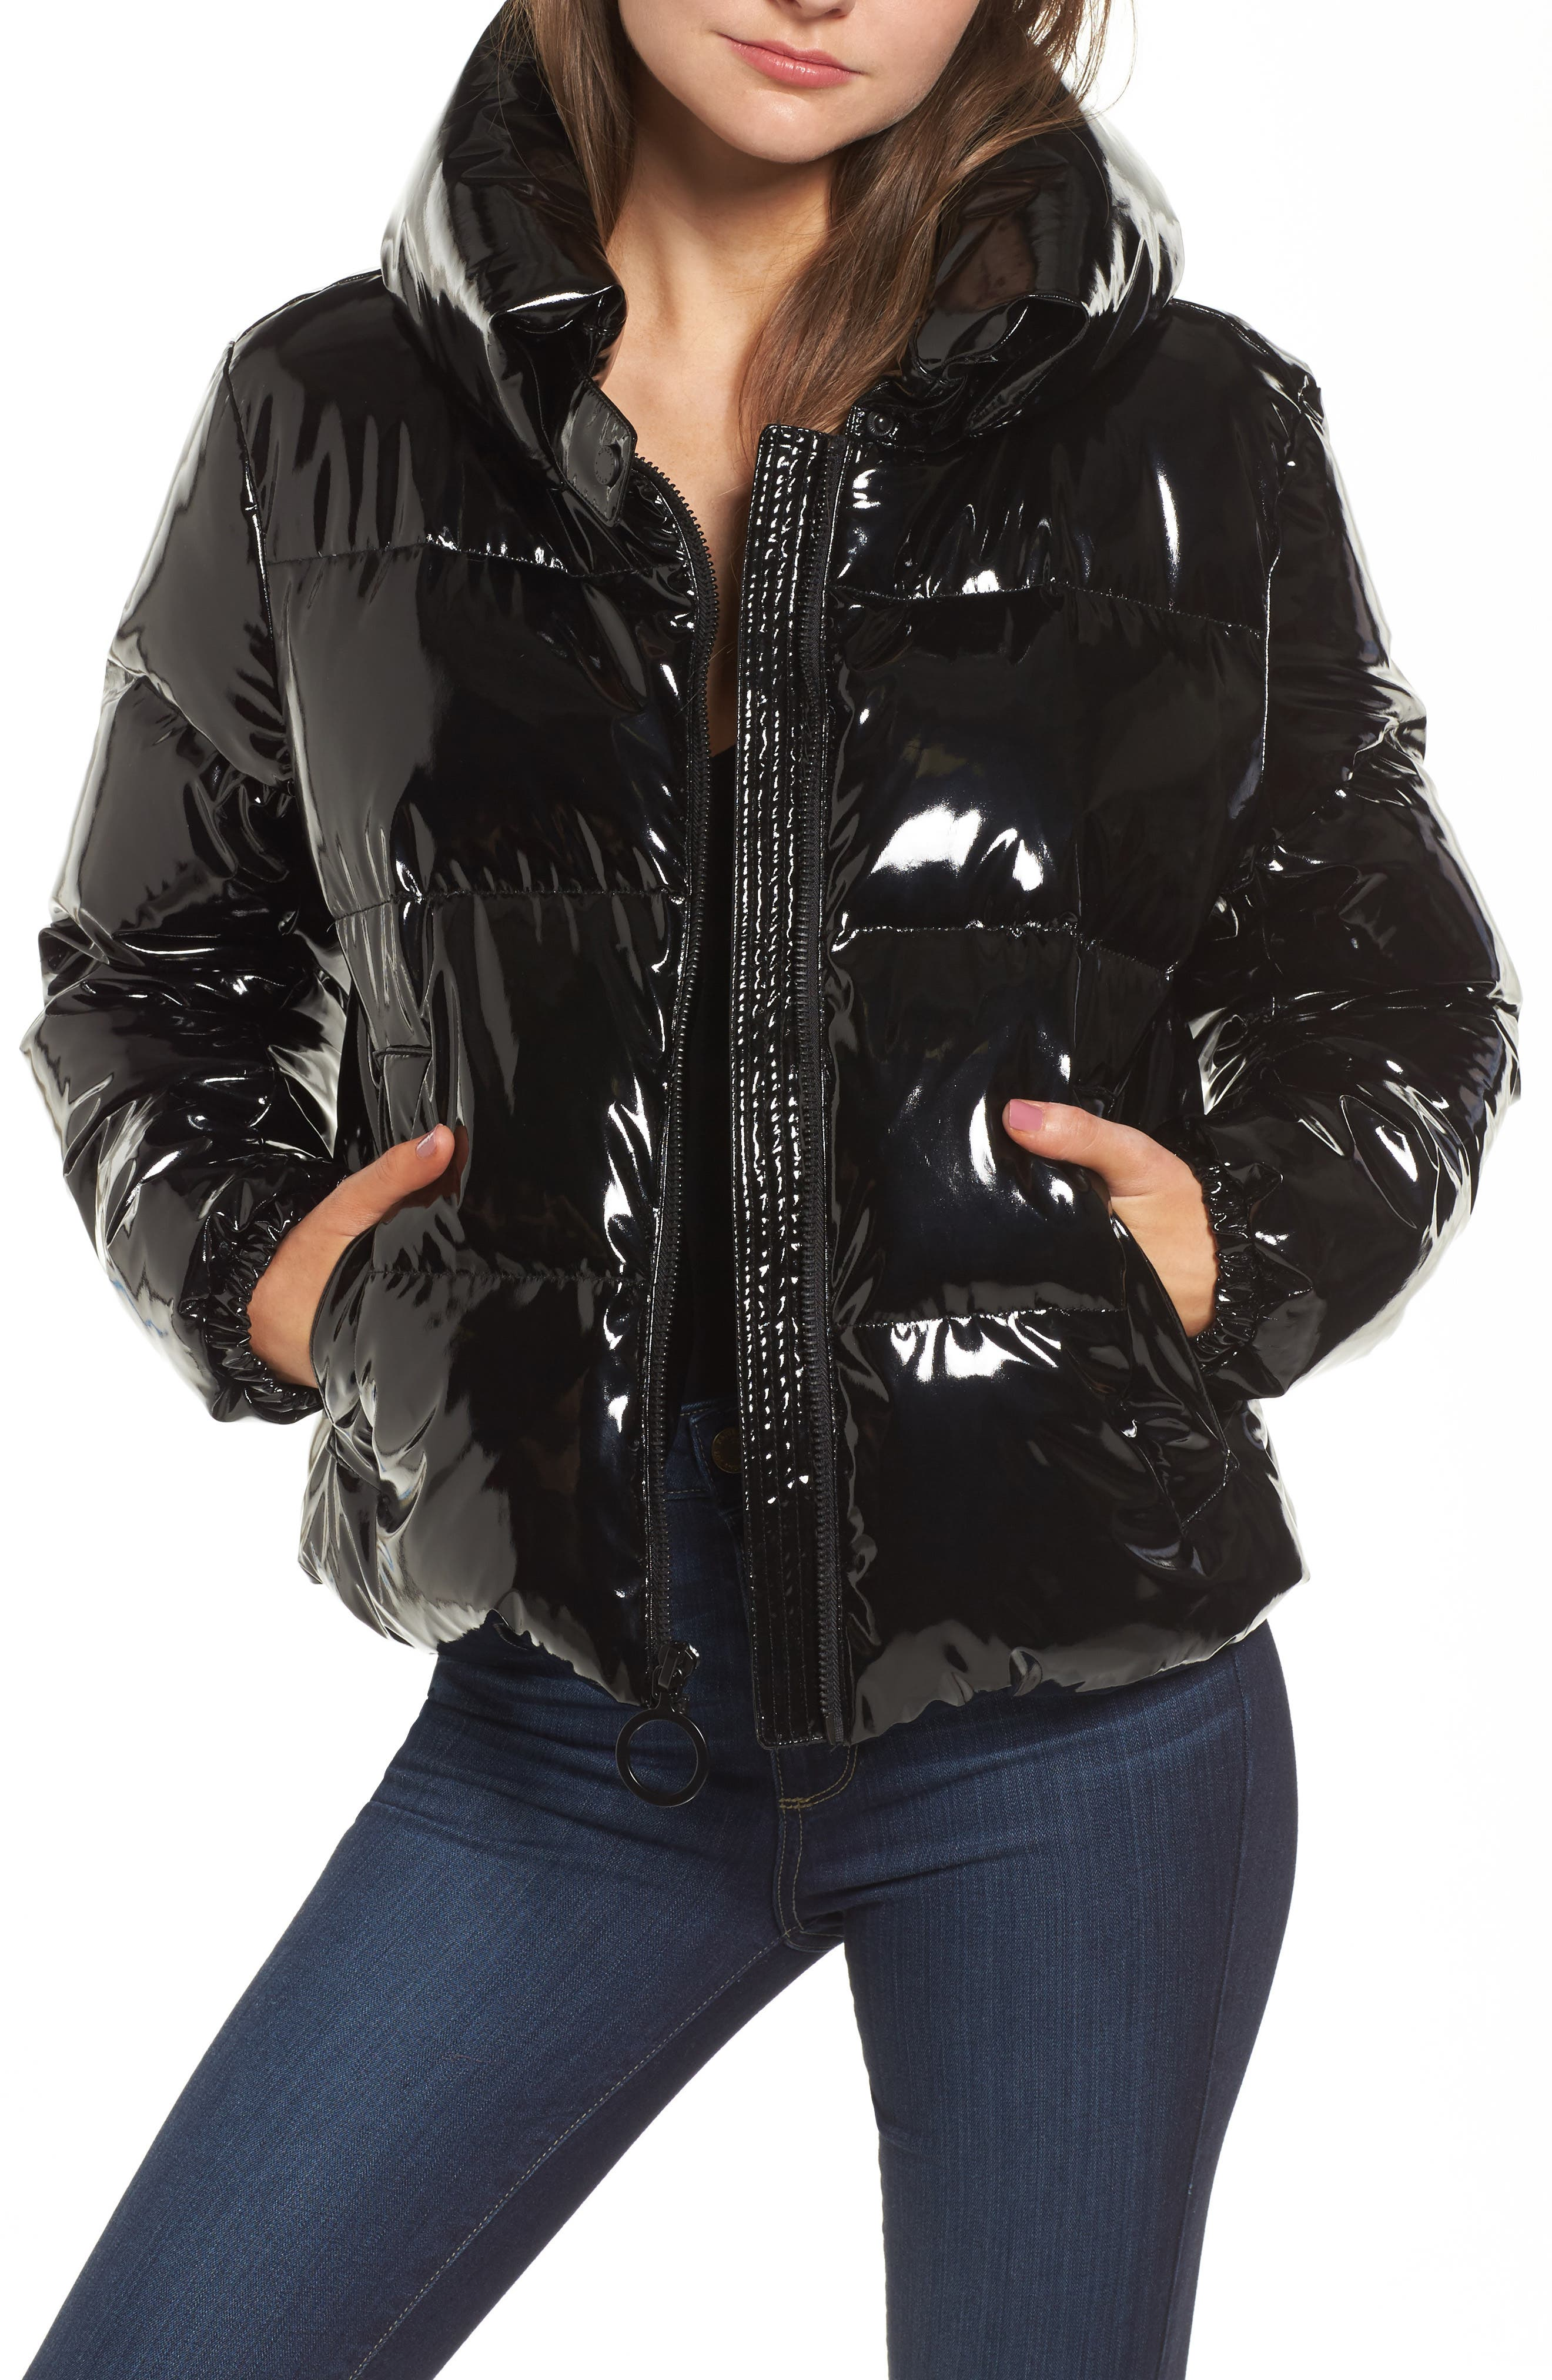 Alternate Image 1 Selected - KENDALL + KYLIE Shiny Puffer Jacket